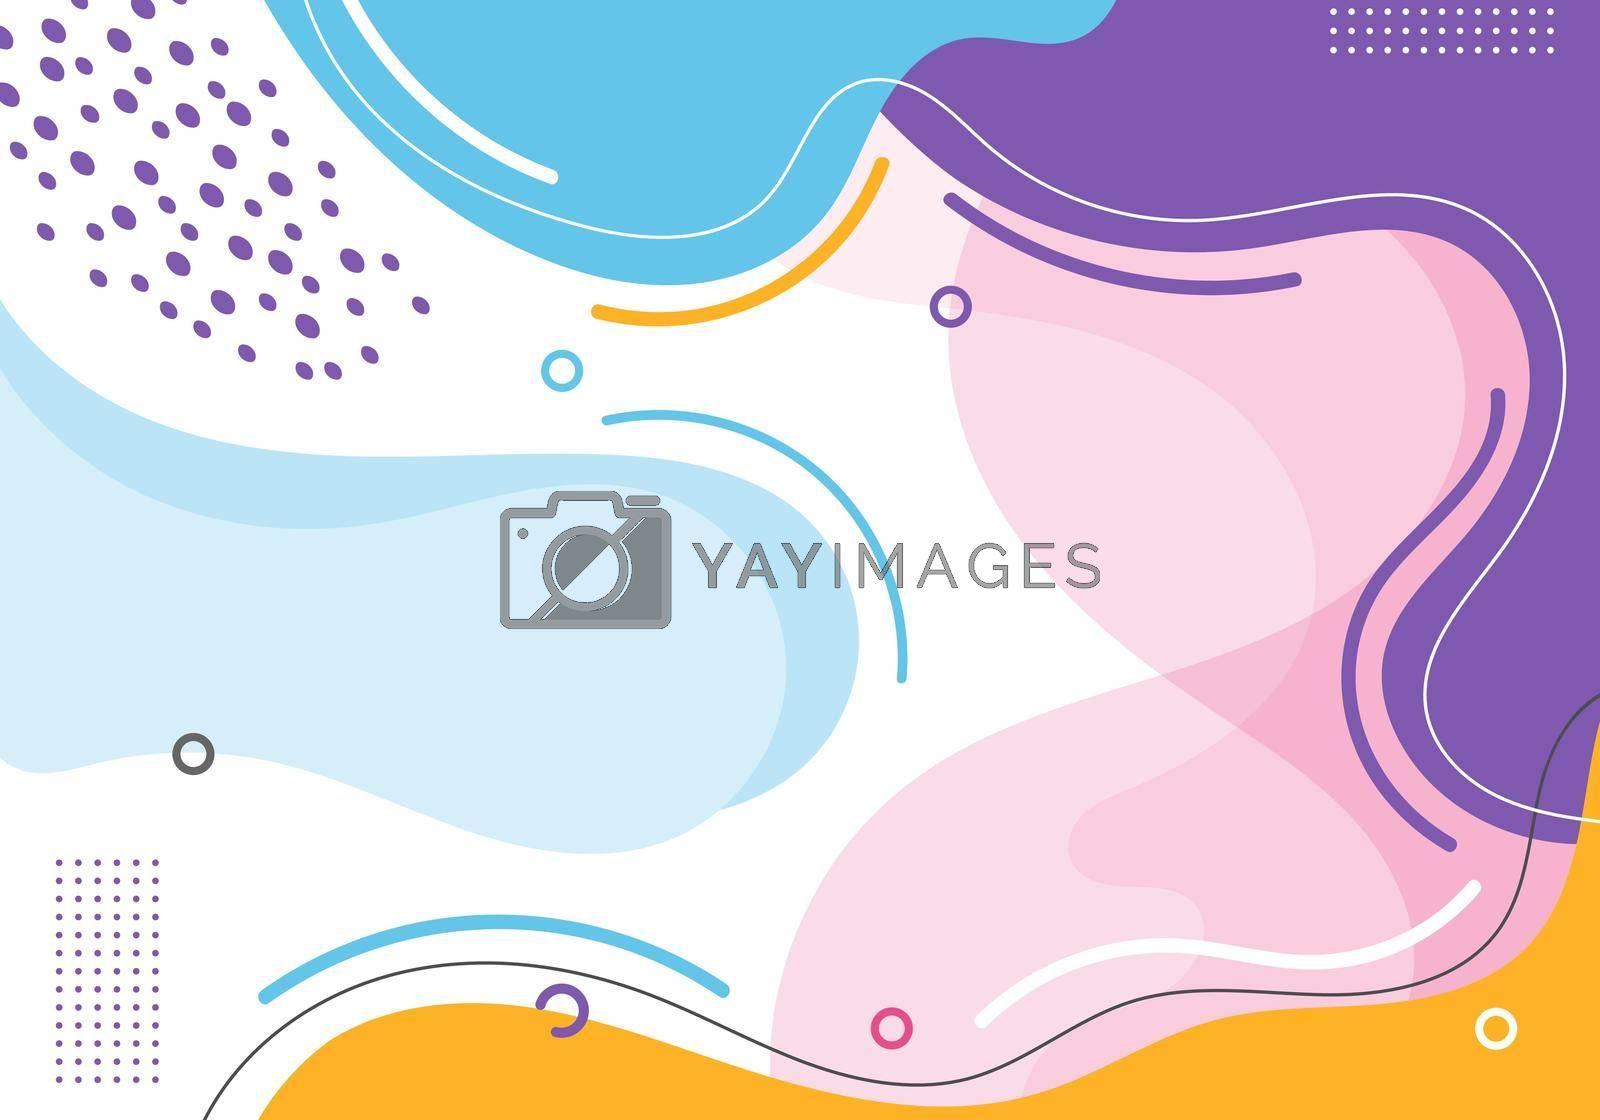 Royalty free image of Banner web template abstract hand drawn pink, blue, yellow, purple color organic fluid shape with circle line pattern on white background by phochi